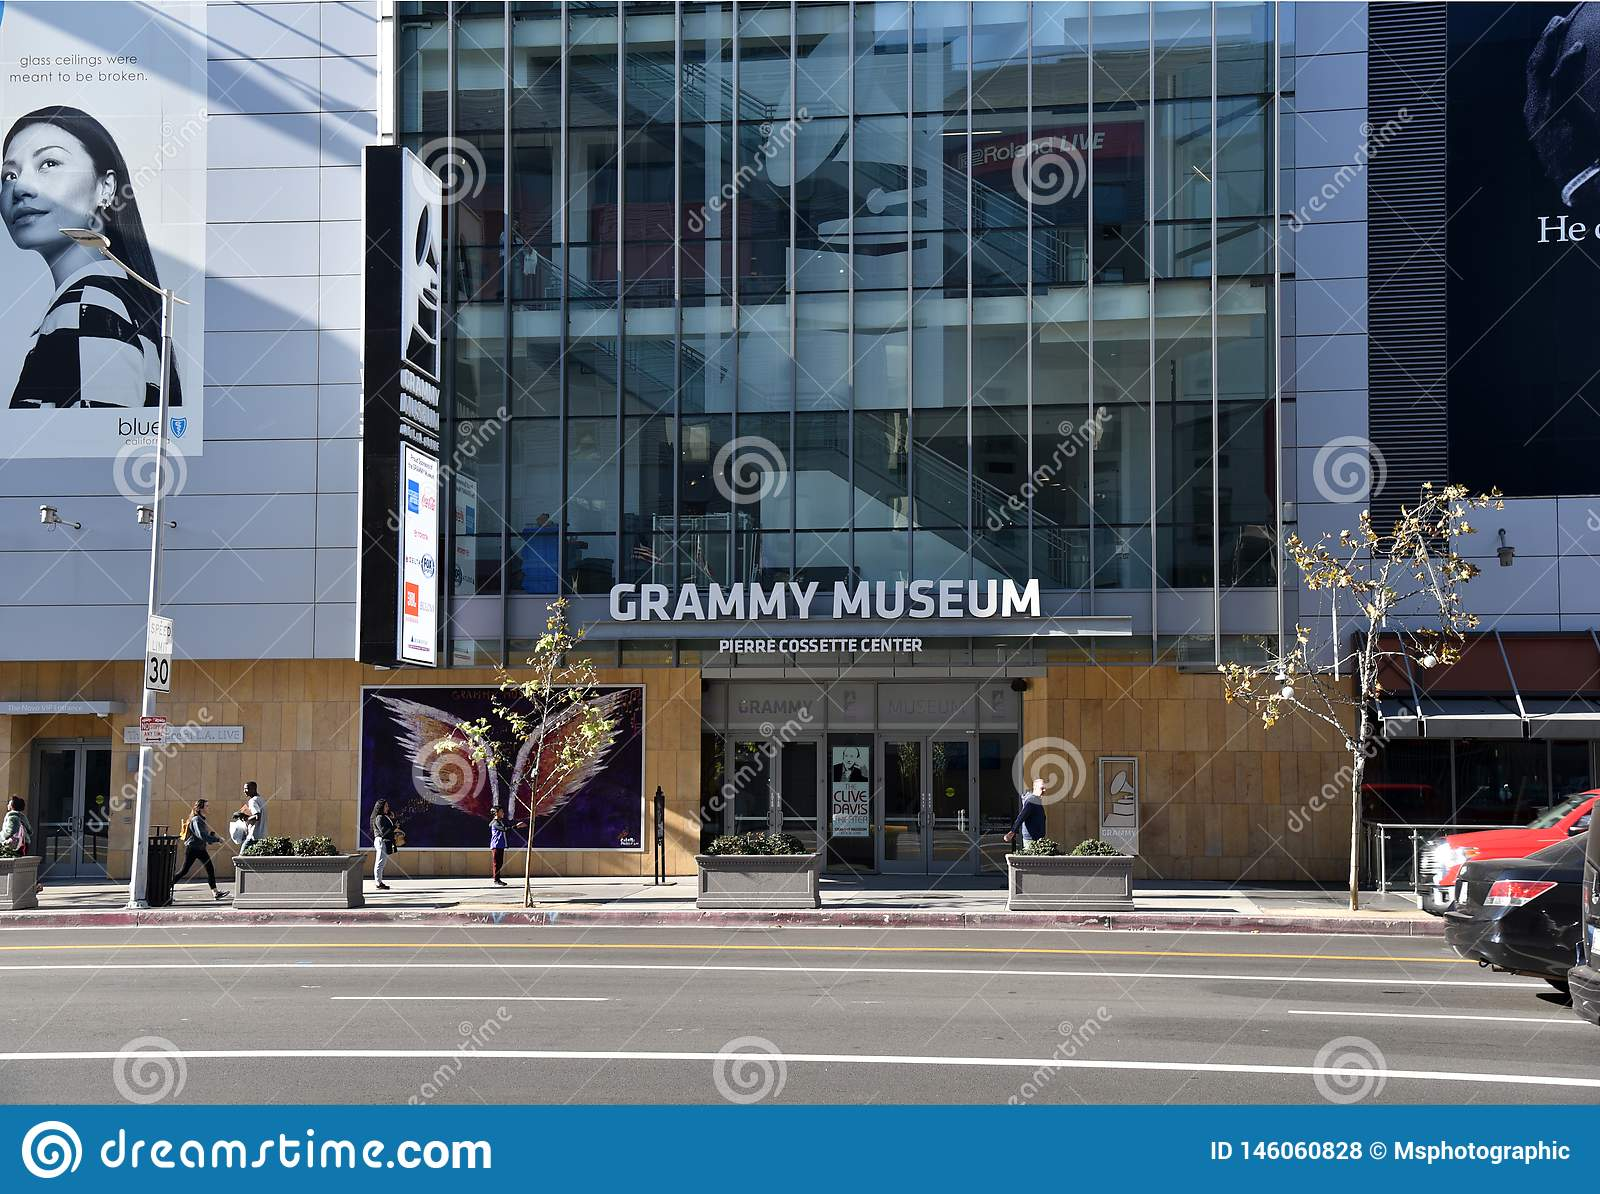 Grammy Museum in Los Angeles